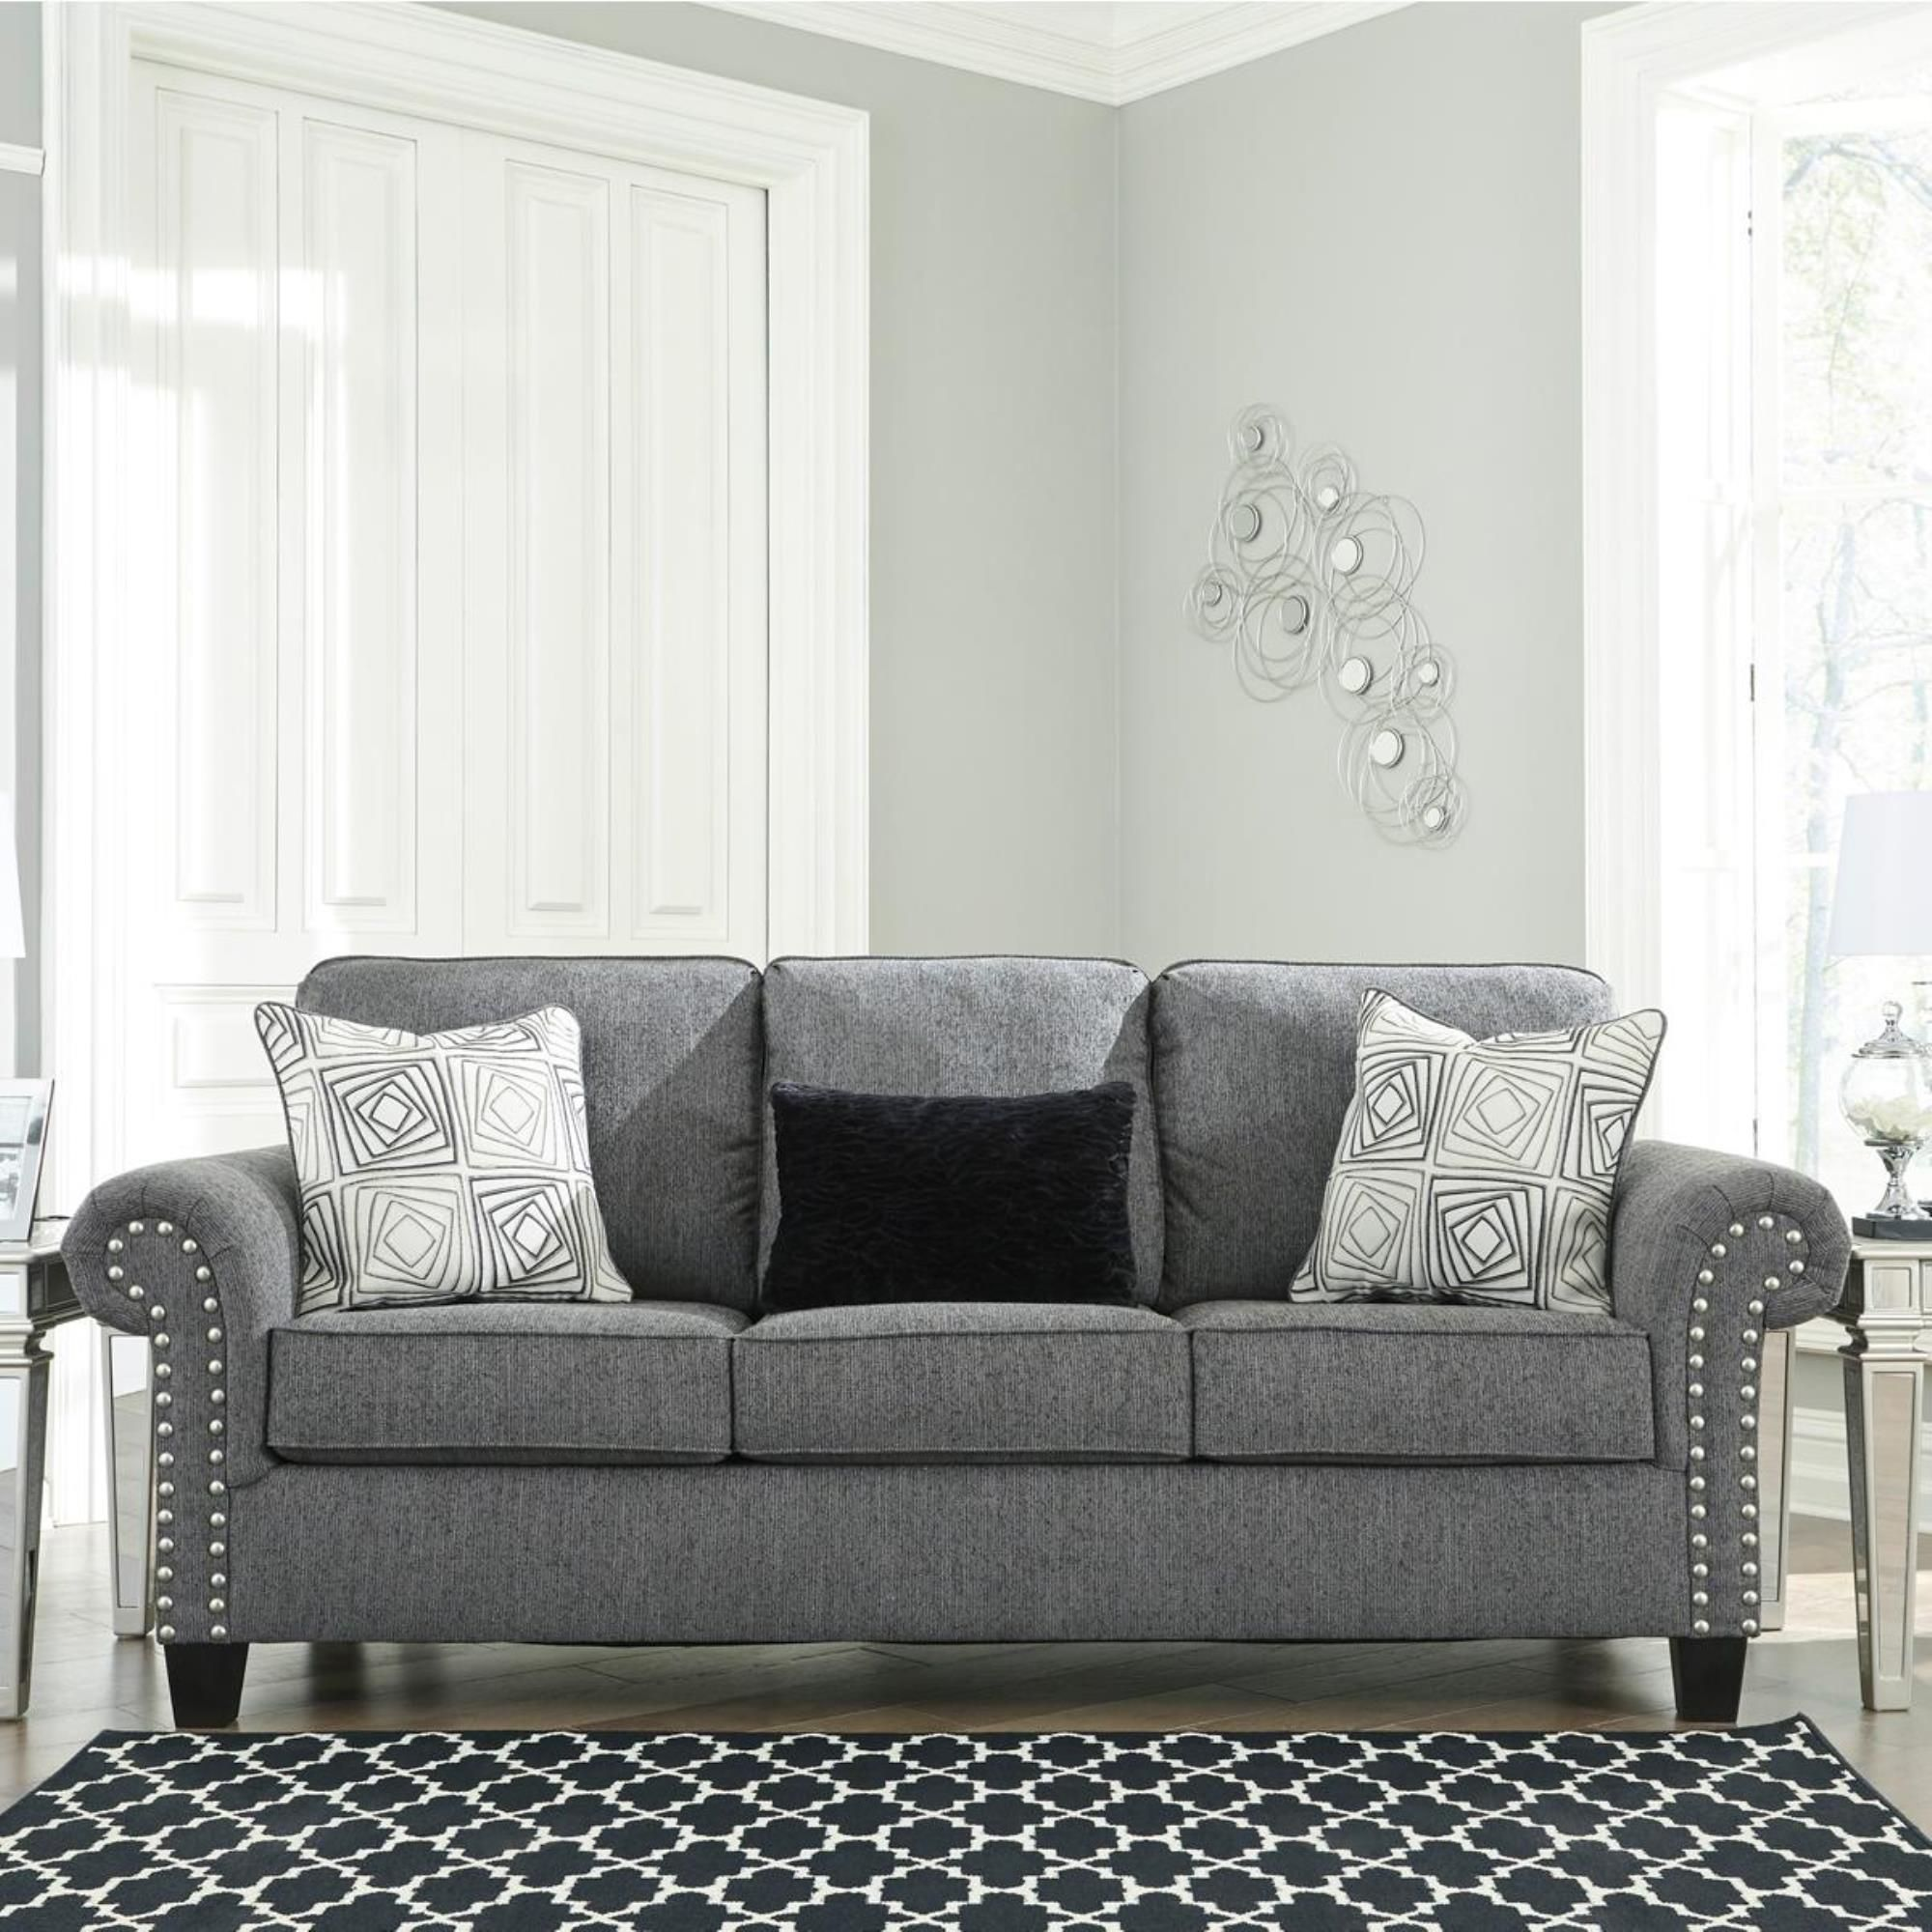 Signature Design By Ashley Agleno Sofa In Praylor Nebraska Furniture Mart In 2020 Charcoal Sofa Charcoal Loveseat Love Seat #nfm #living #room #sets